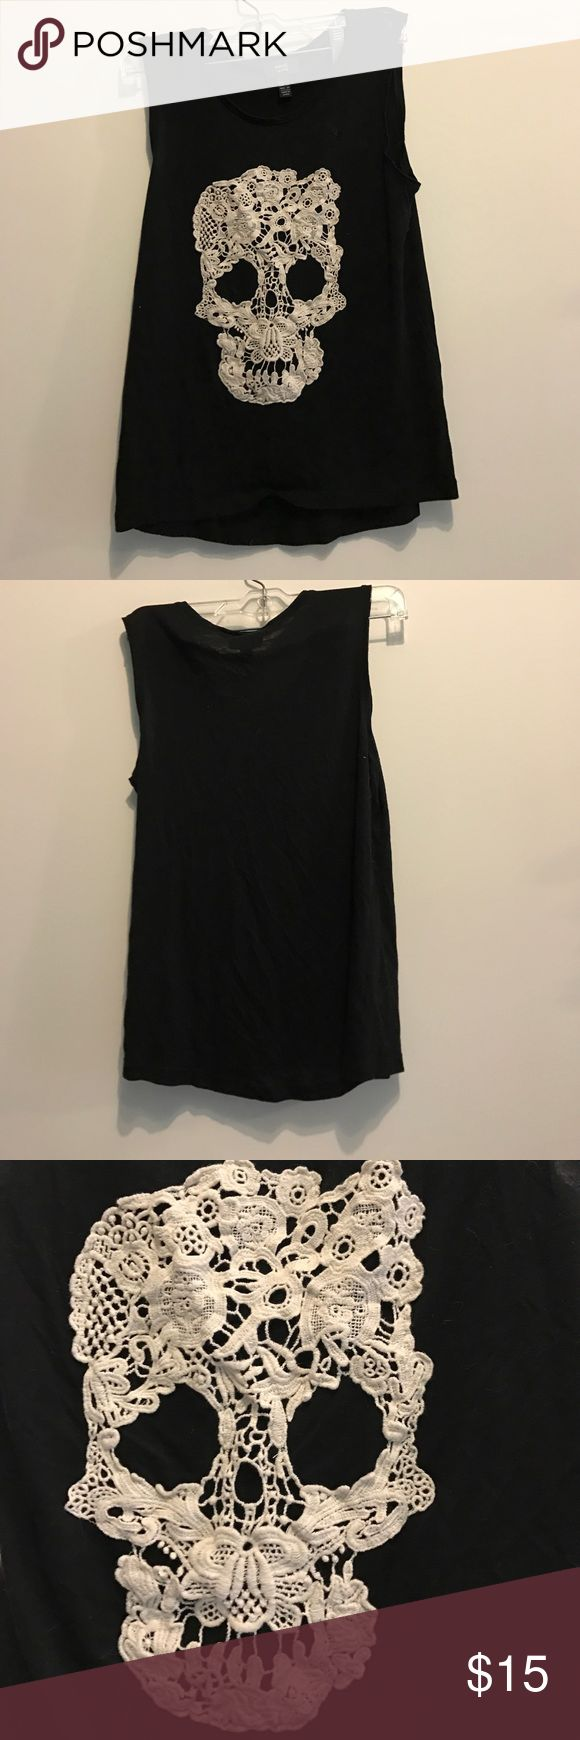 MNG lace skull tank Black soft tank with real lace skull. Hardly worn, NWT MNG Jeans Tops Tank Tops